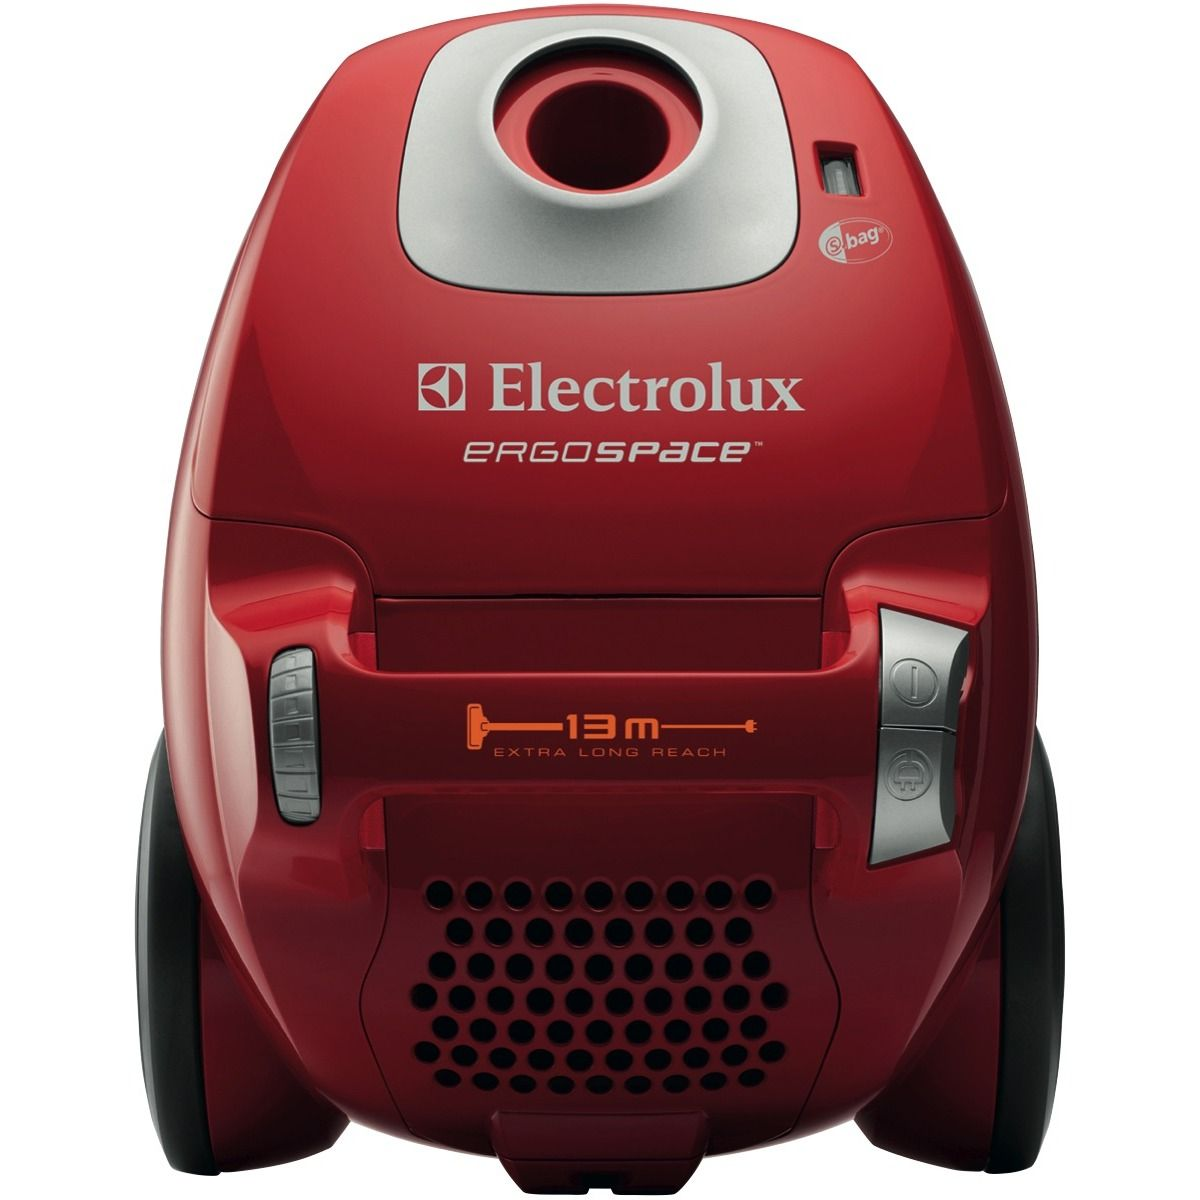 Electrolux Ze347 Ergospace Watermelon Red Bagged Vacuum At